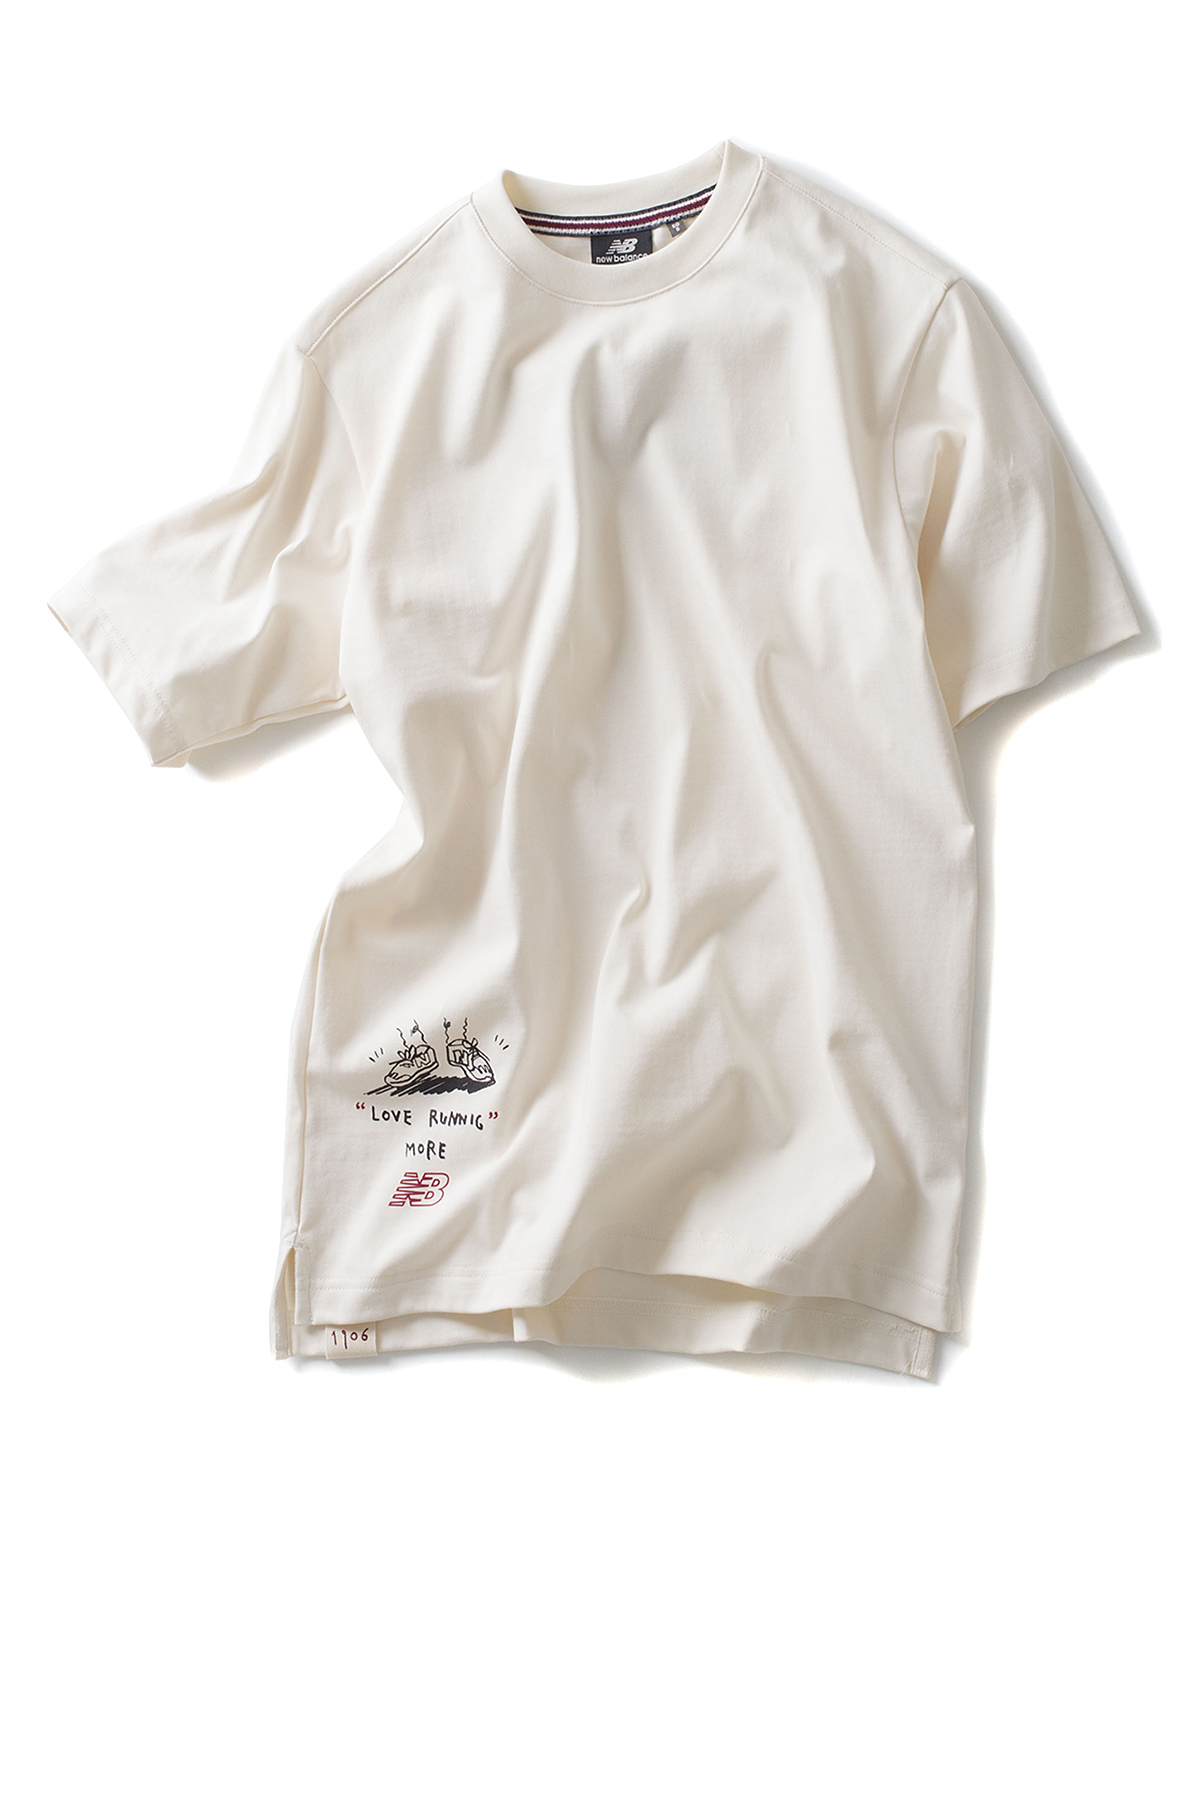 New Balance : UNI Drawing Pack Running On NB Tee (Ivory)